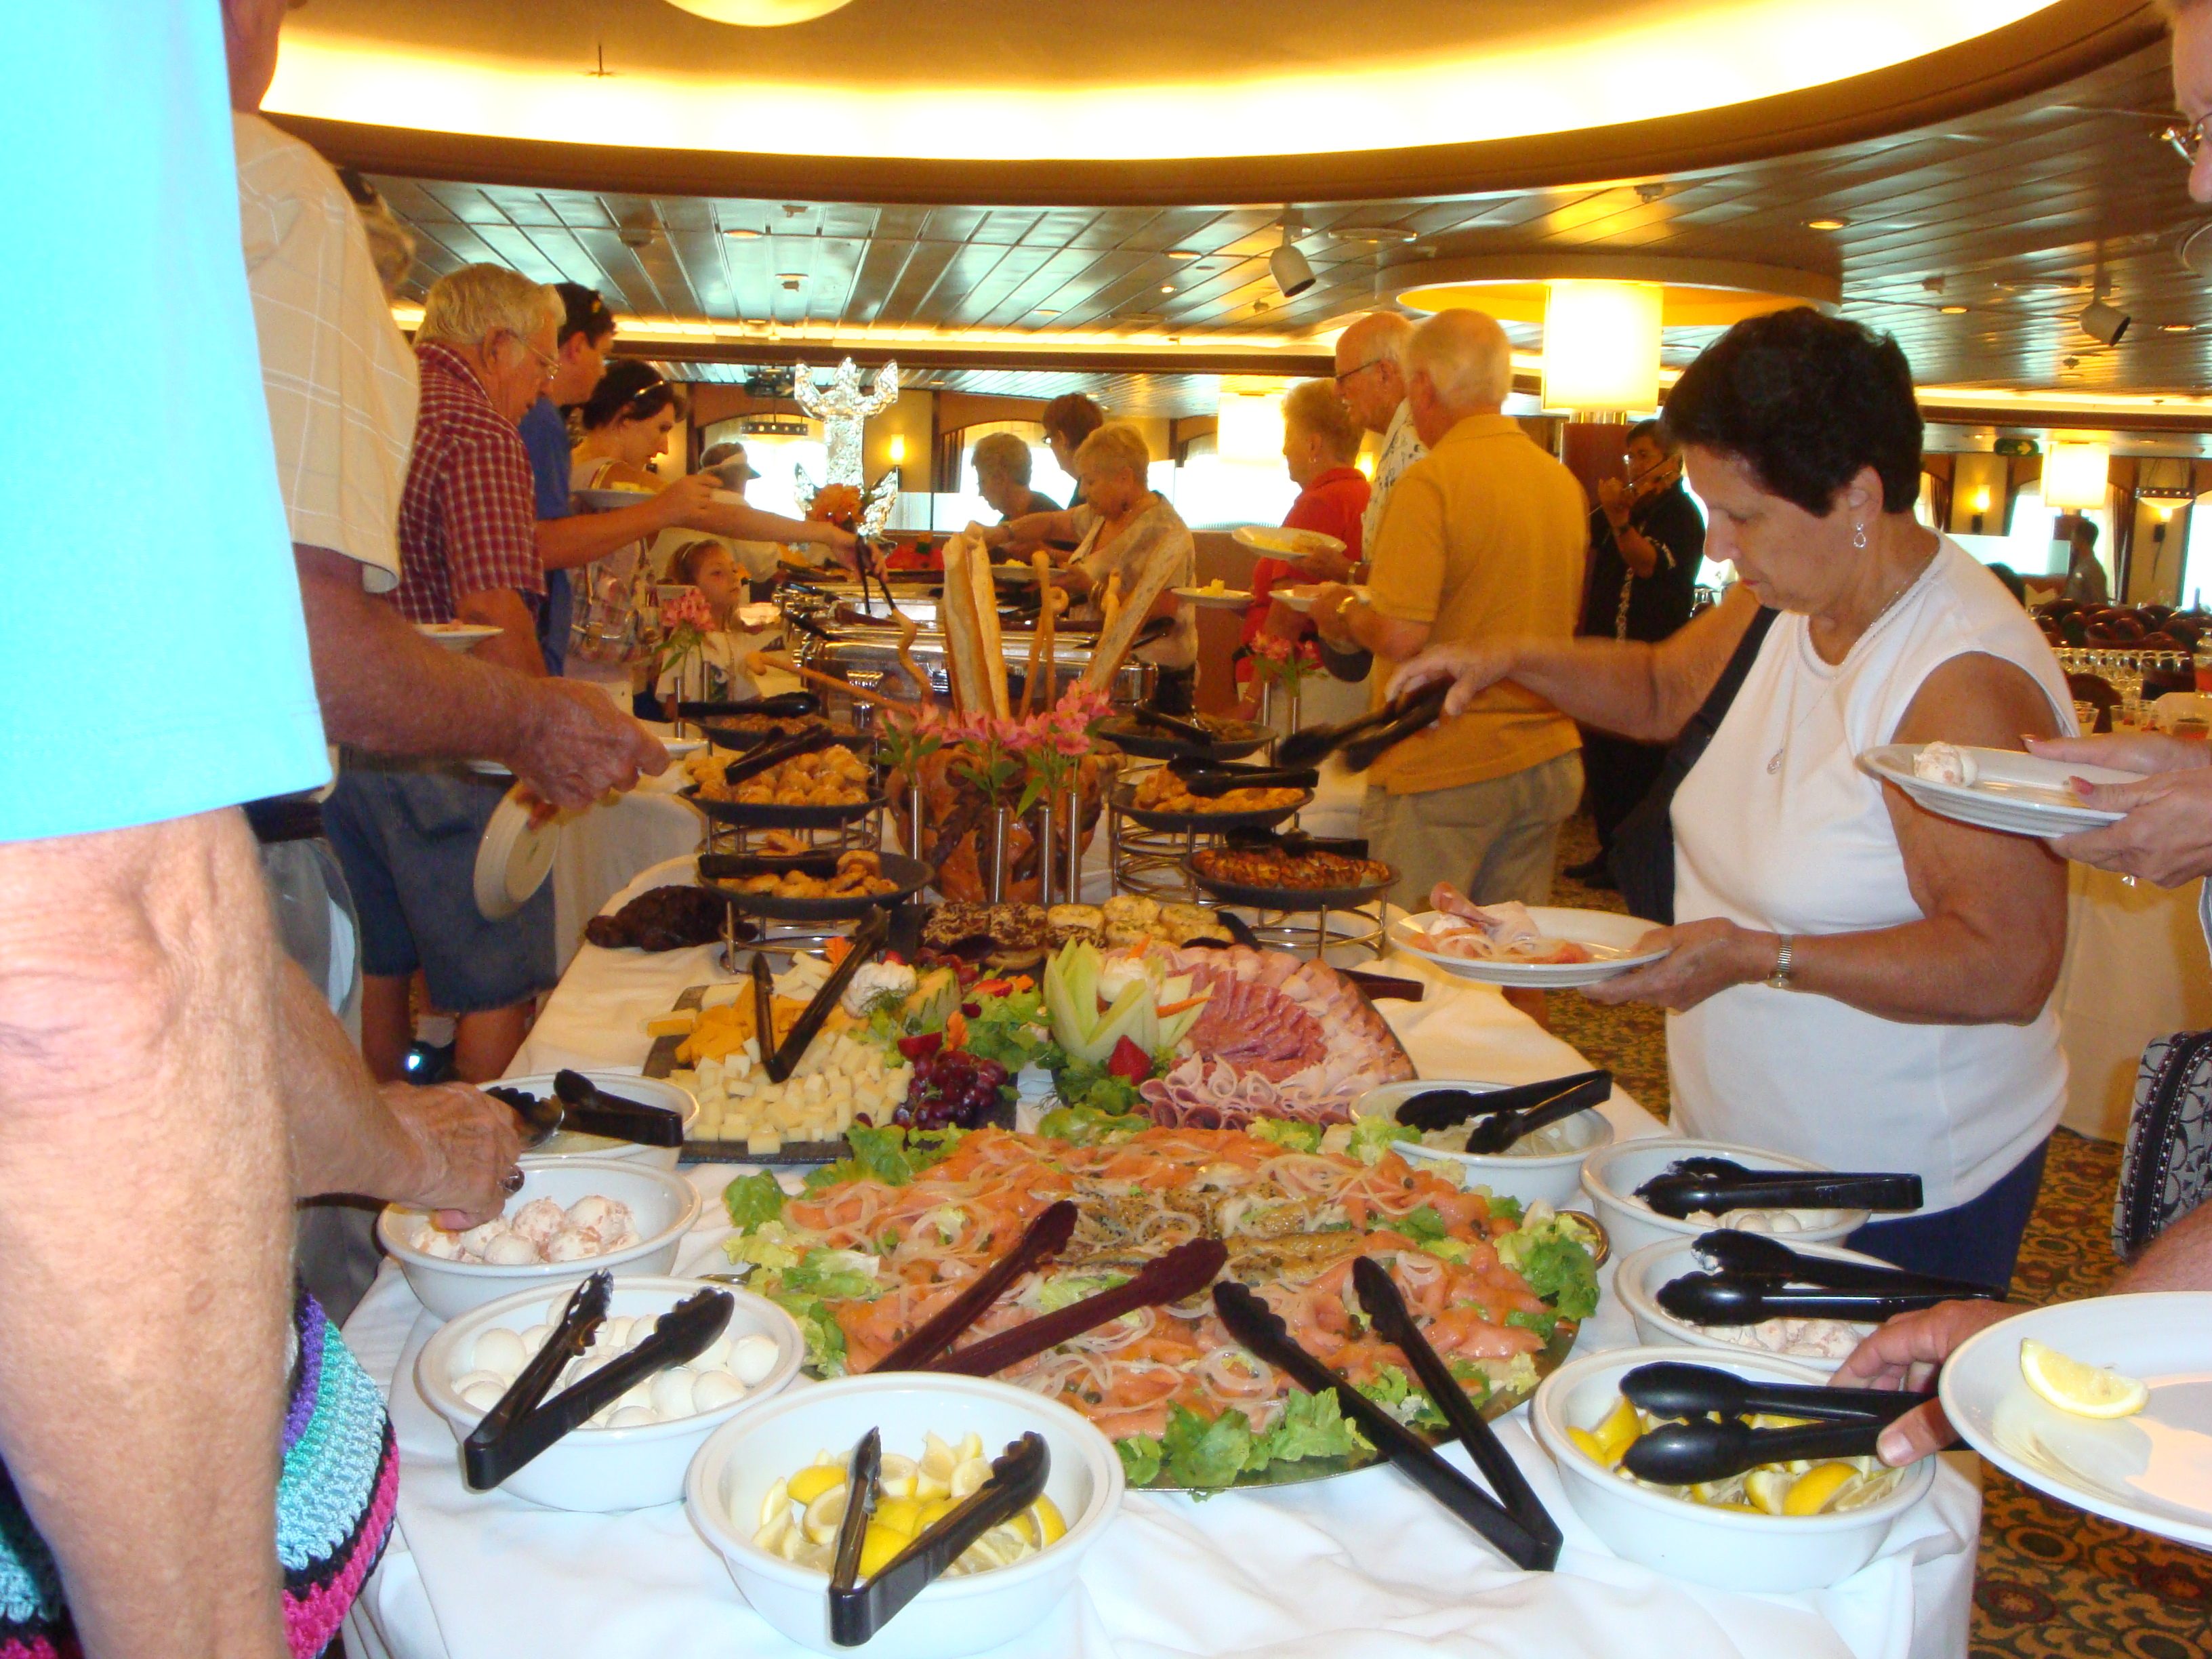 25 2018 Royal Caribbean Cruise Buffet | youmailr.com - photo#3